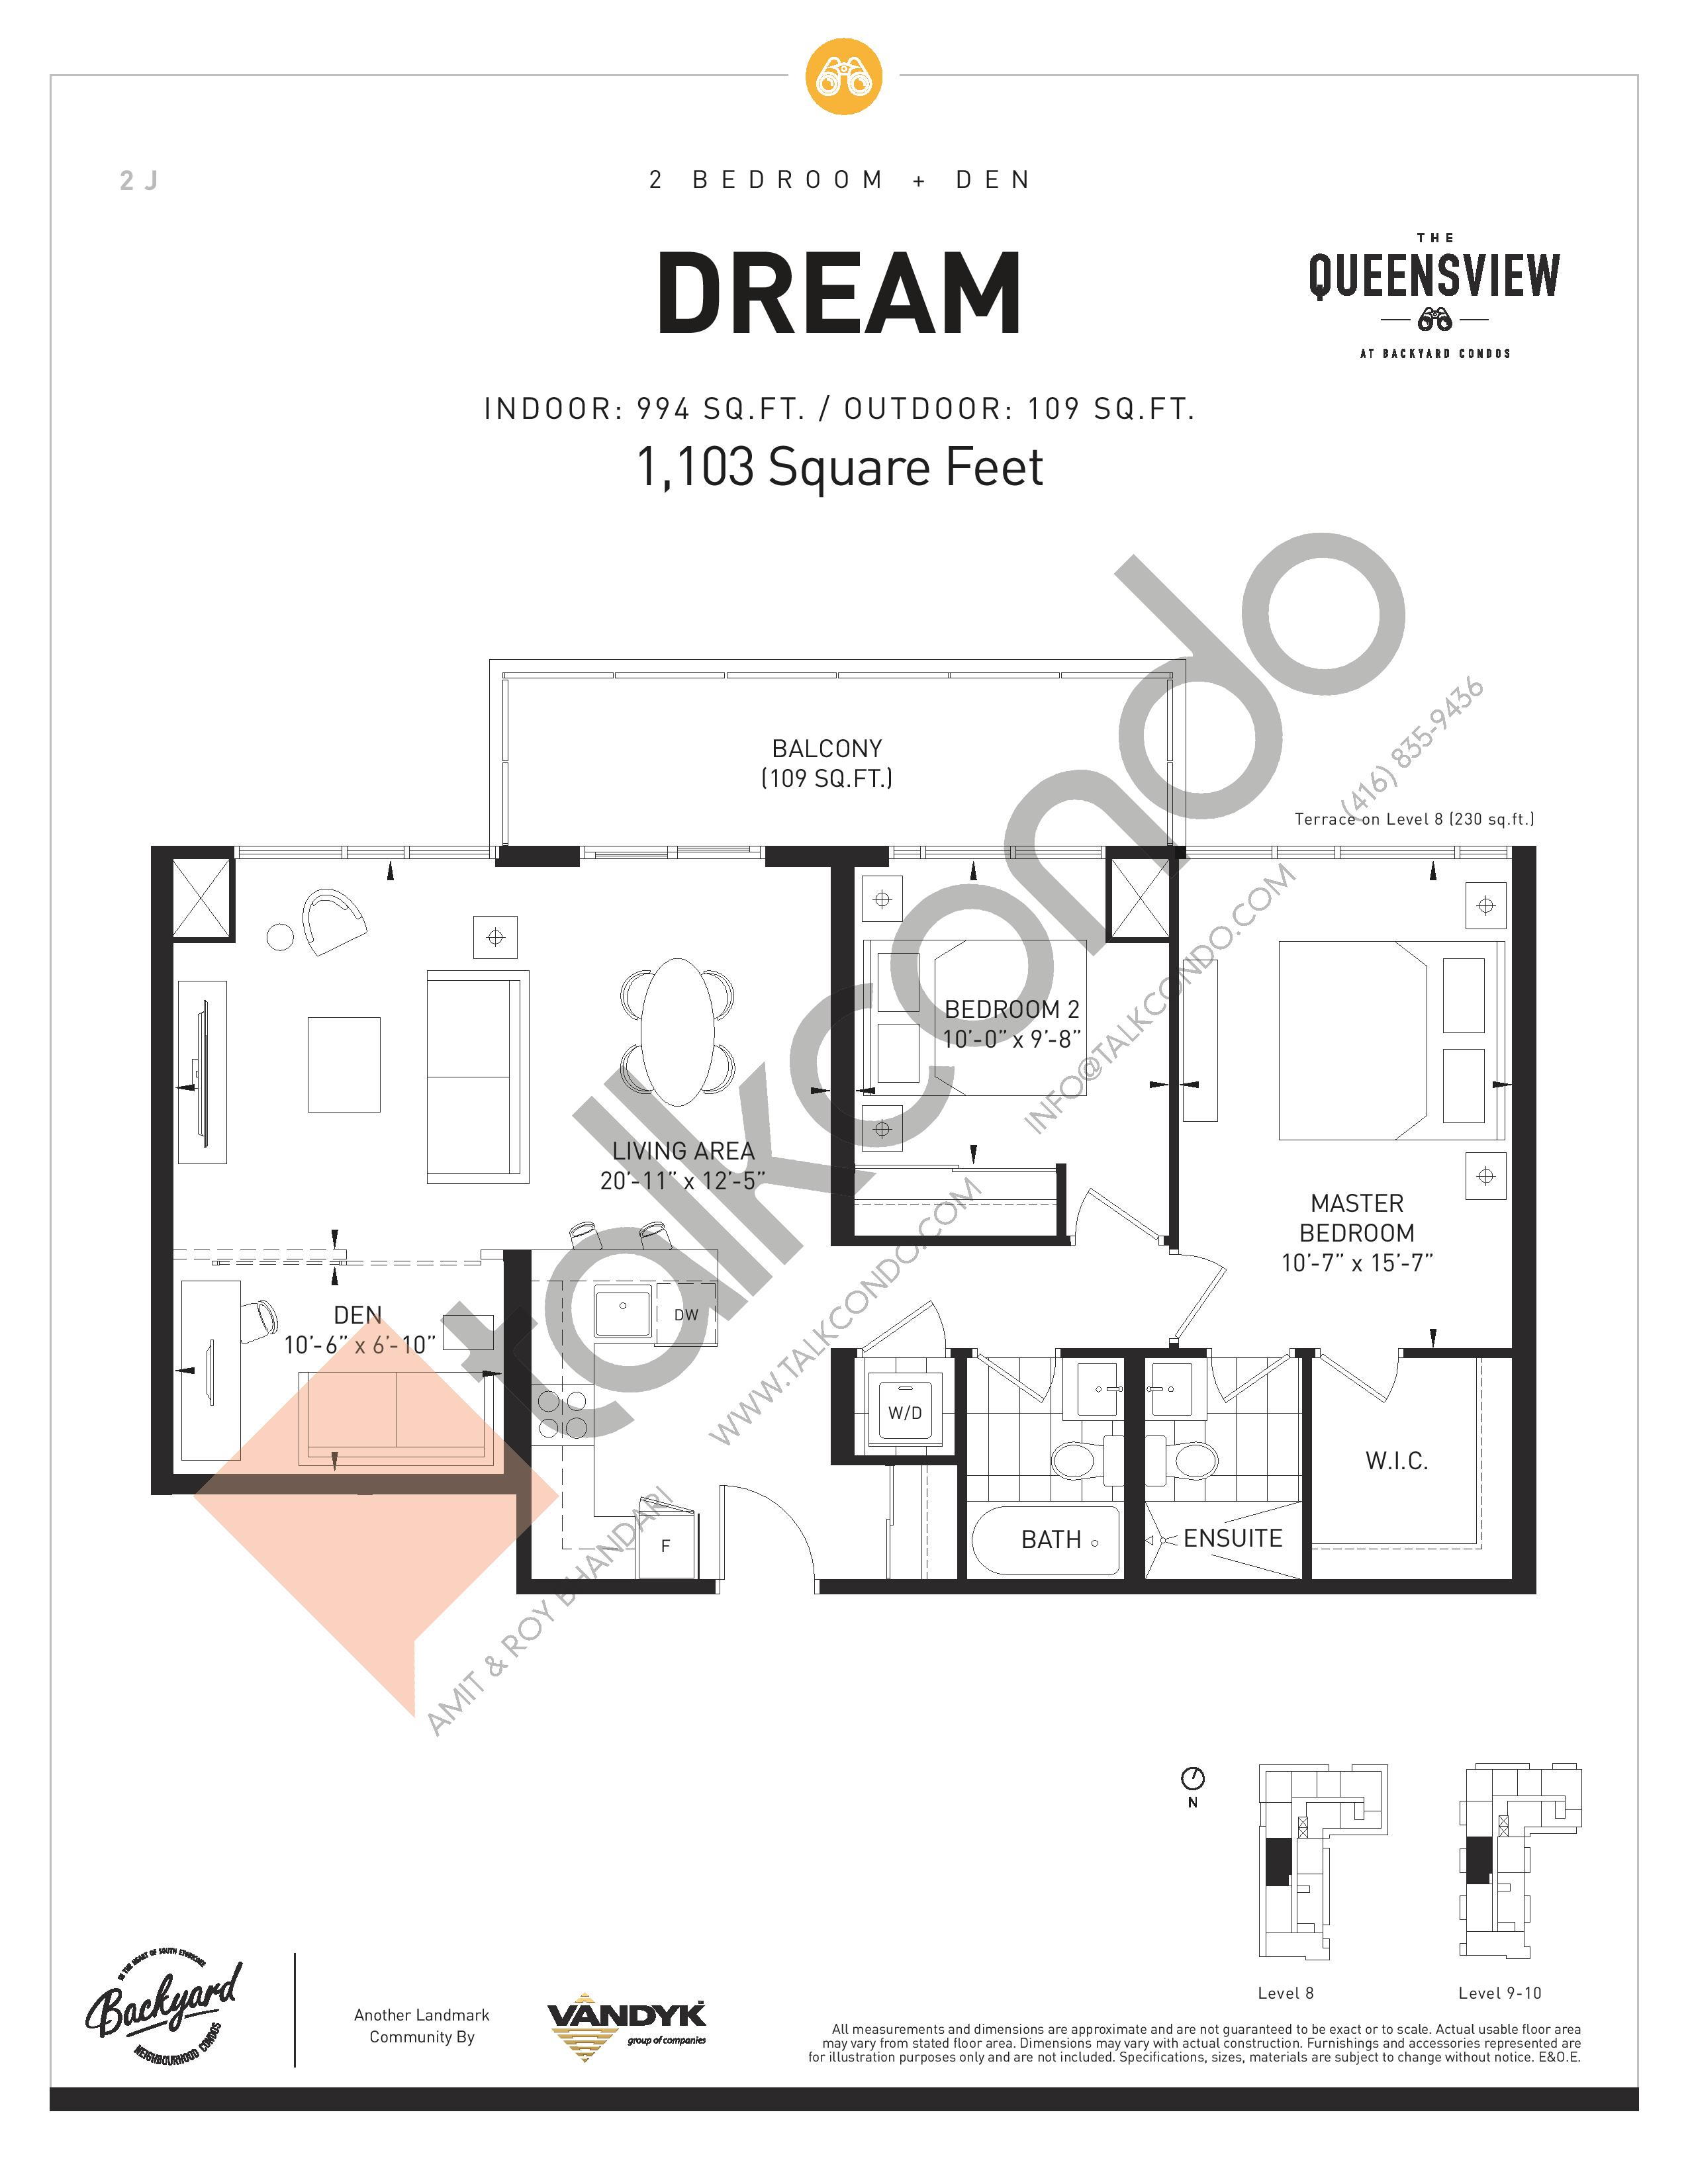 Dream Floor Plan at The Queensview at Backyard Condos - 994 sq.ft